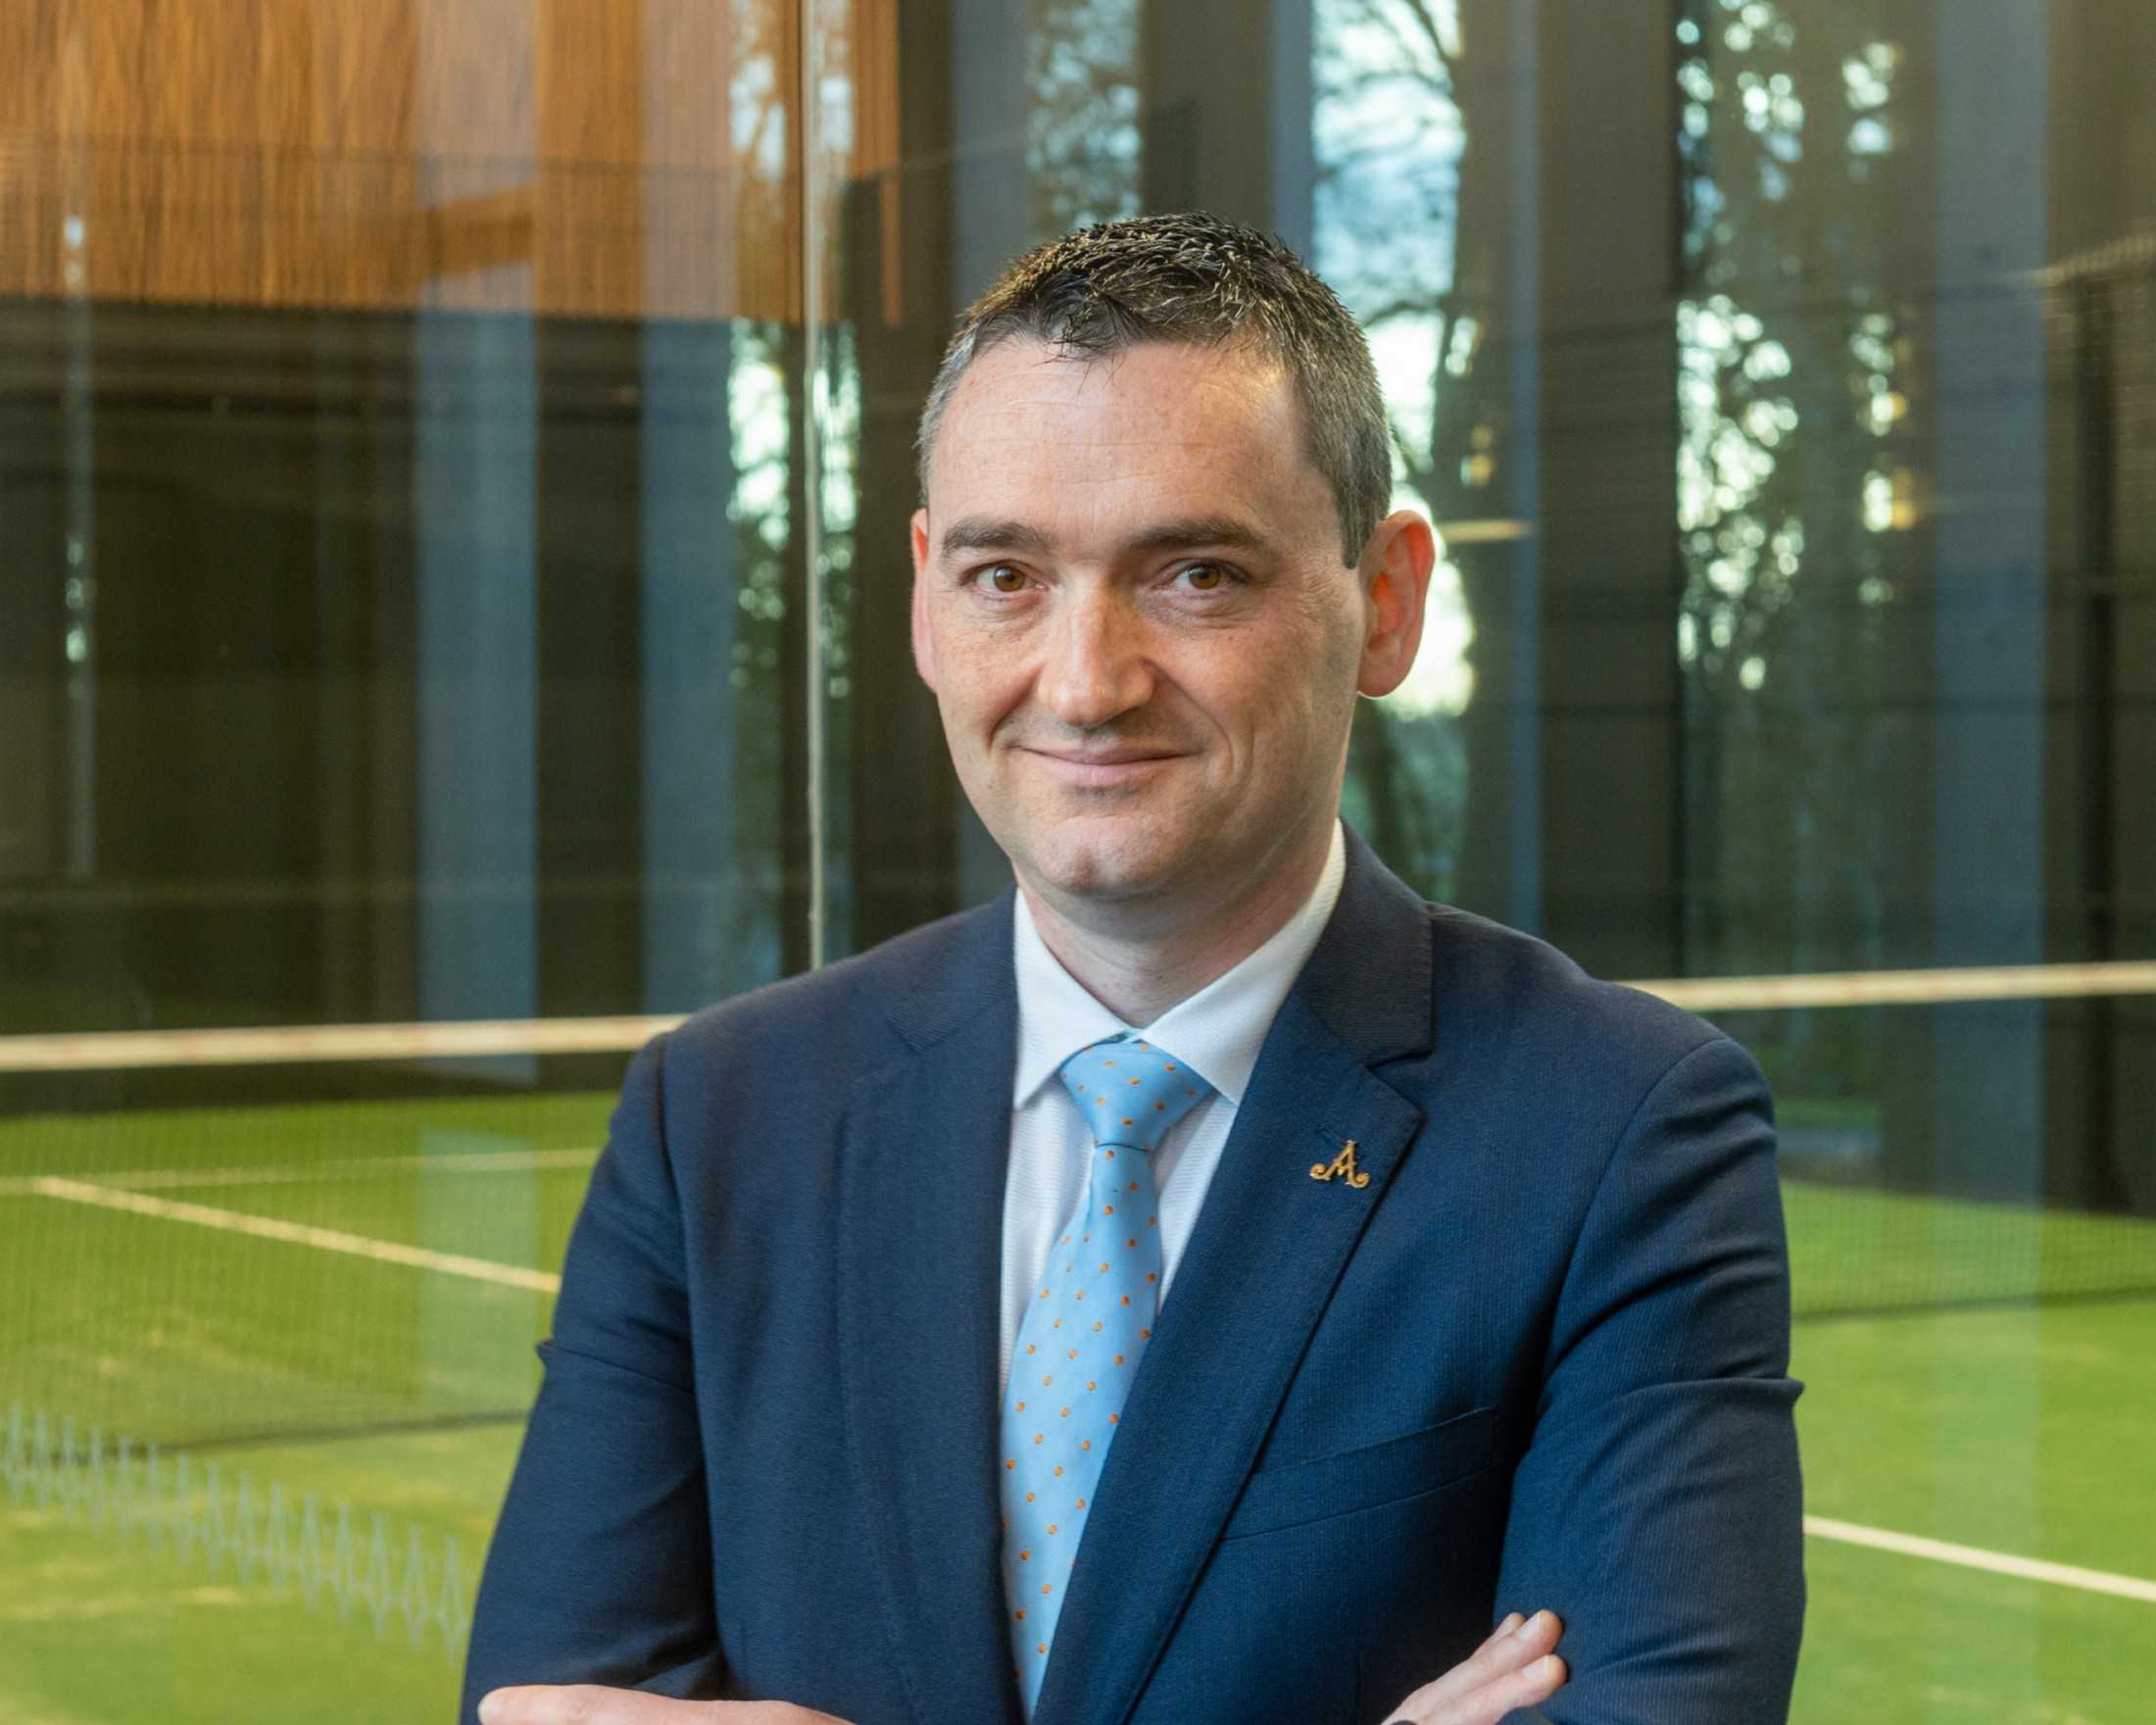 Brendan O'Connor announced as new General Manager of Adare Manor